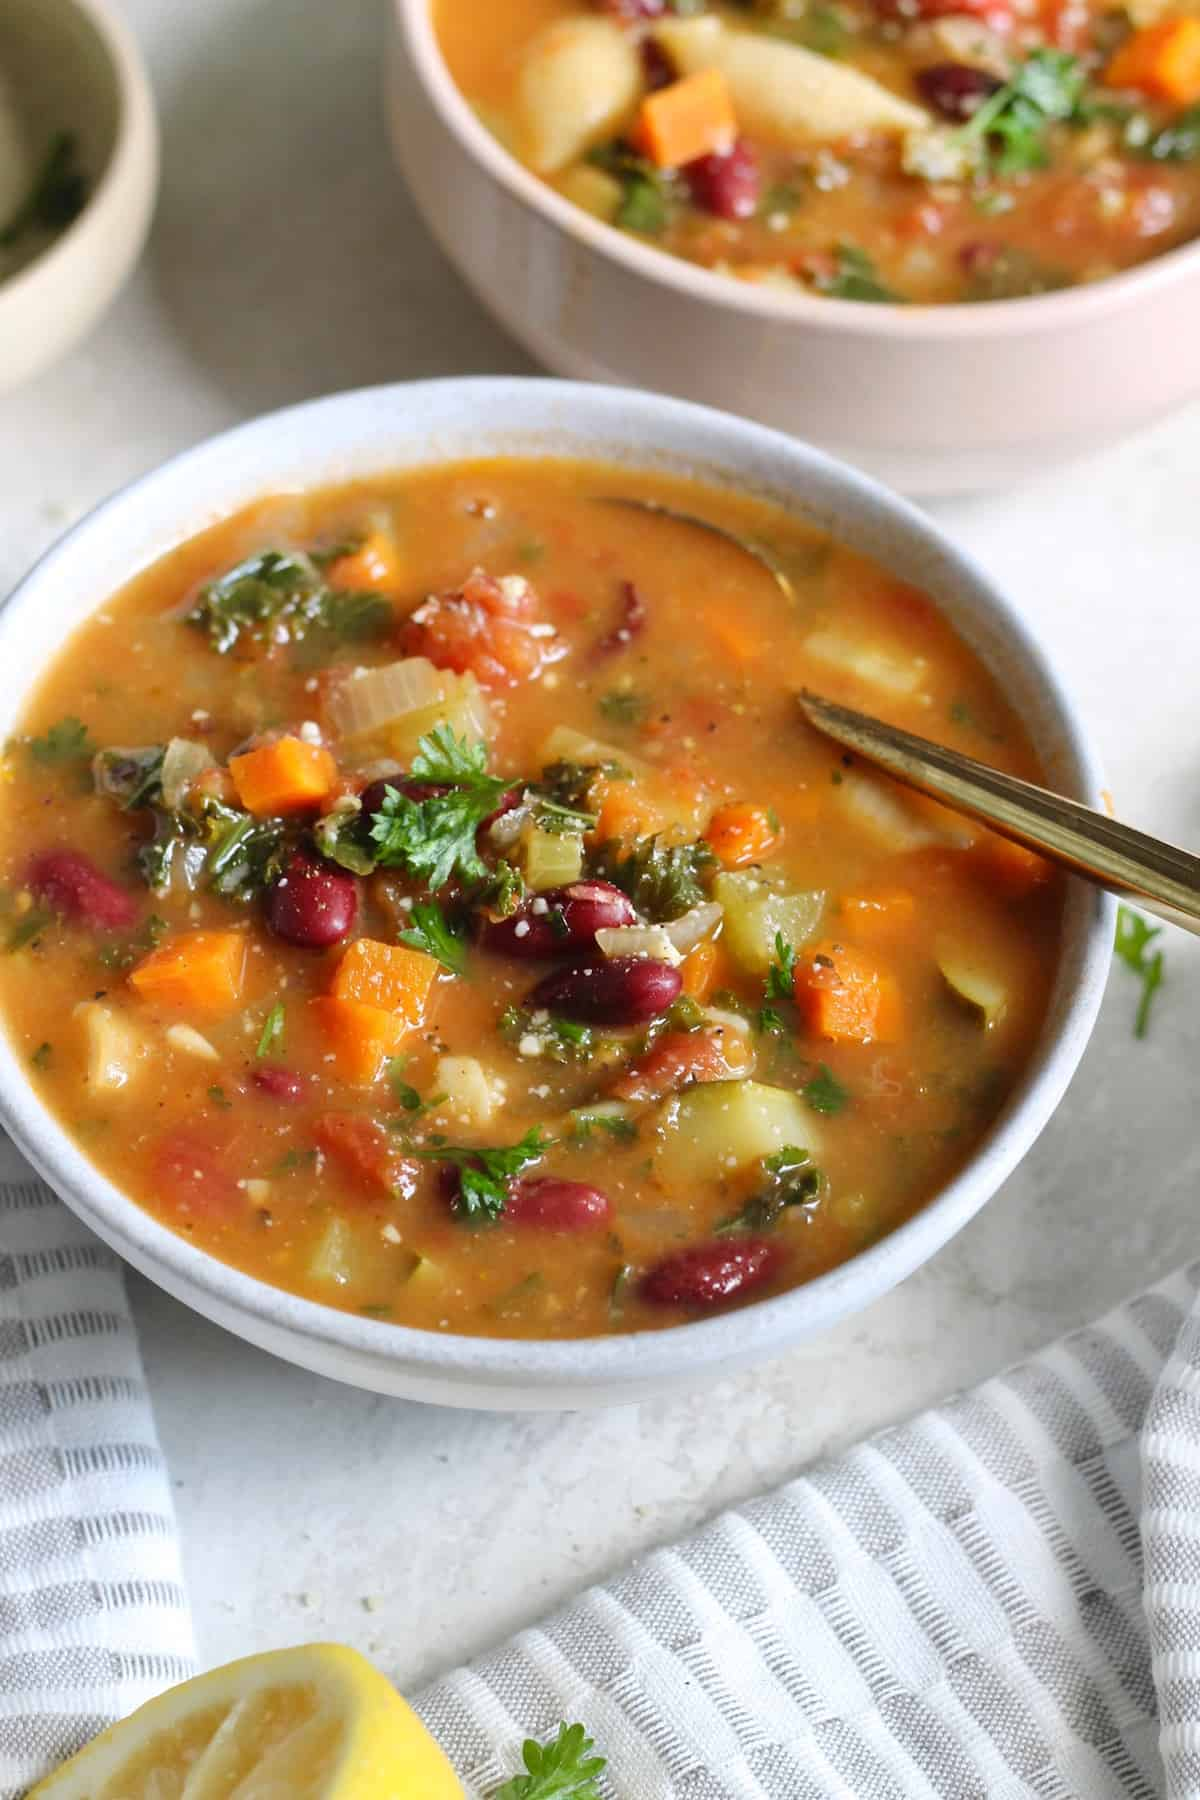 bowl of vegetable soup with lemon